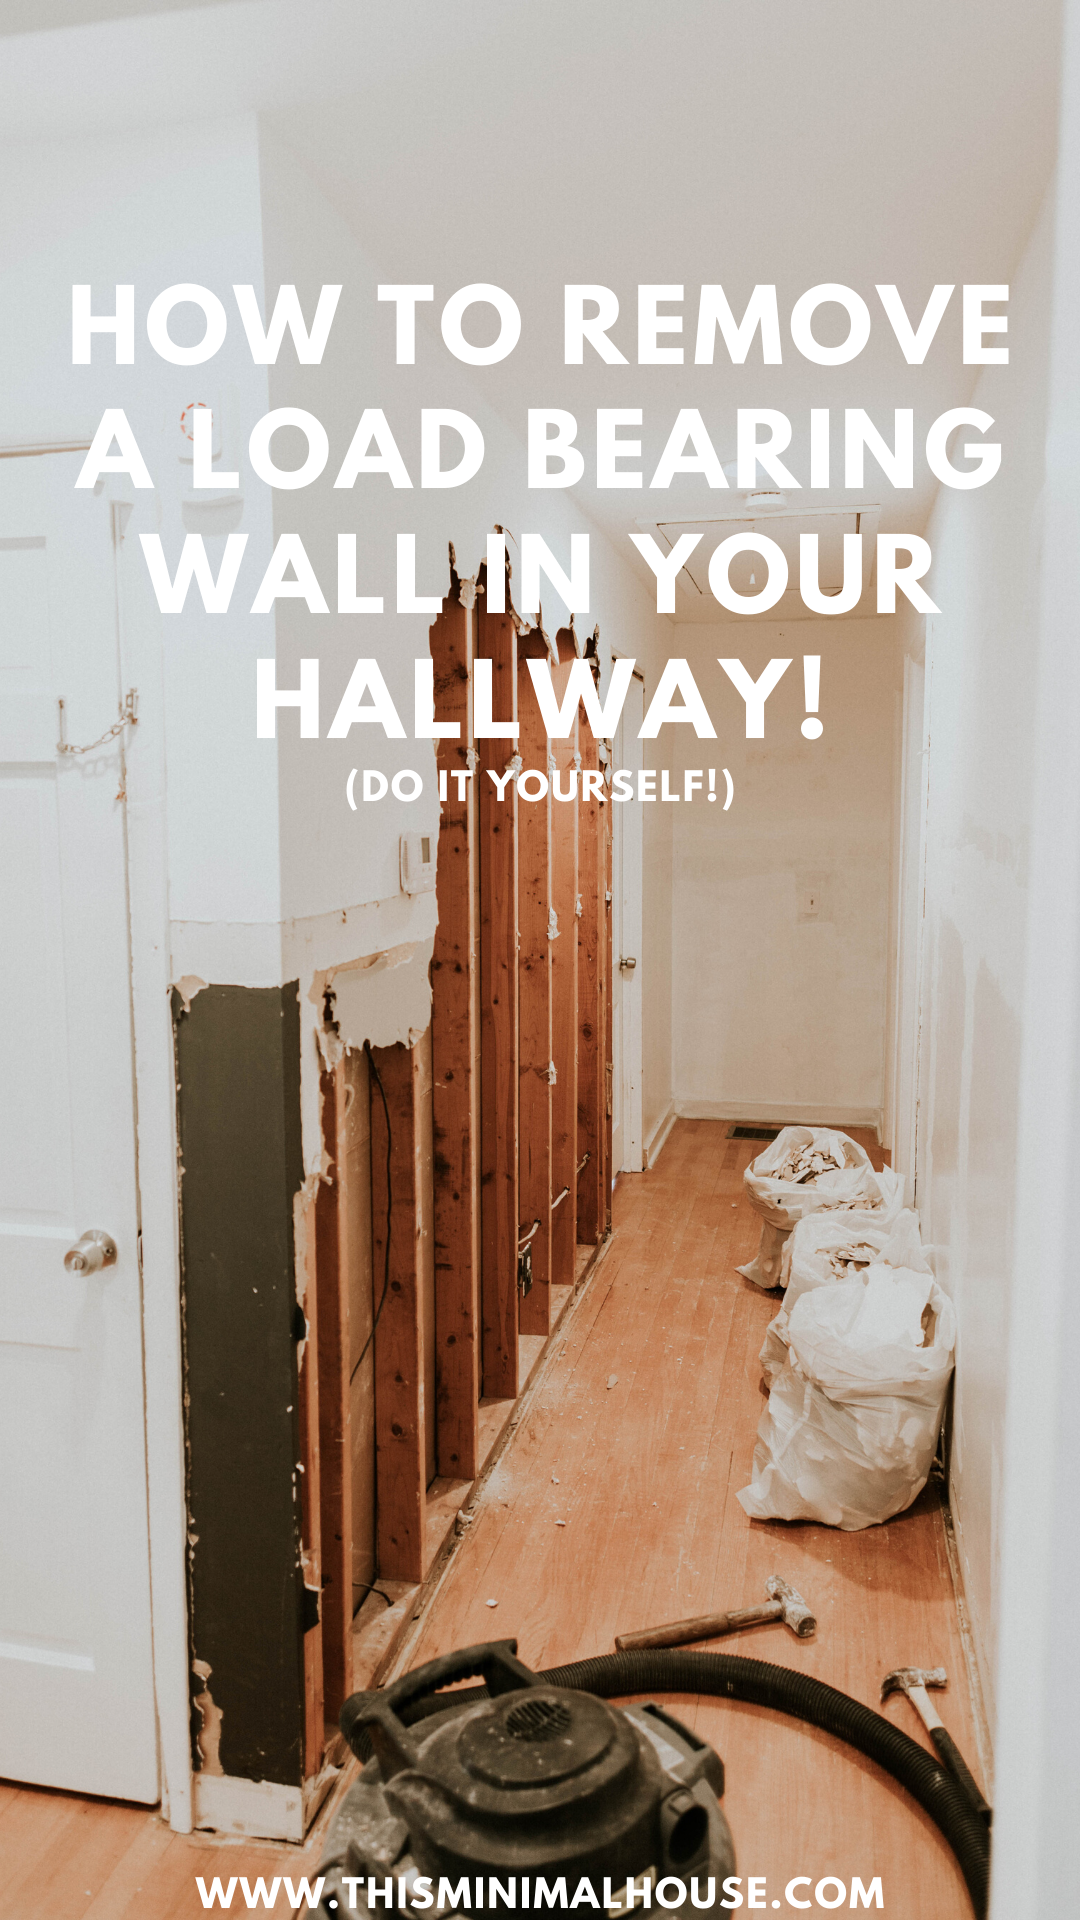 How to remove a load bearing wall in your hallway